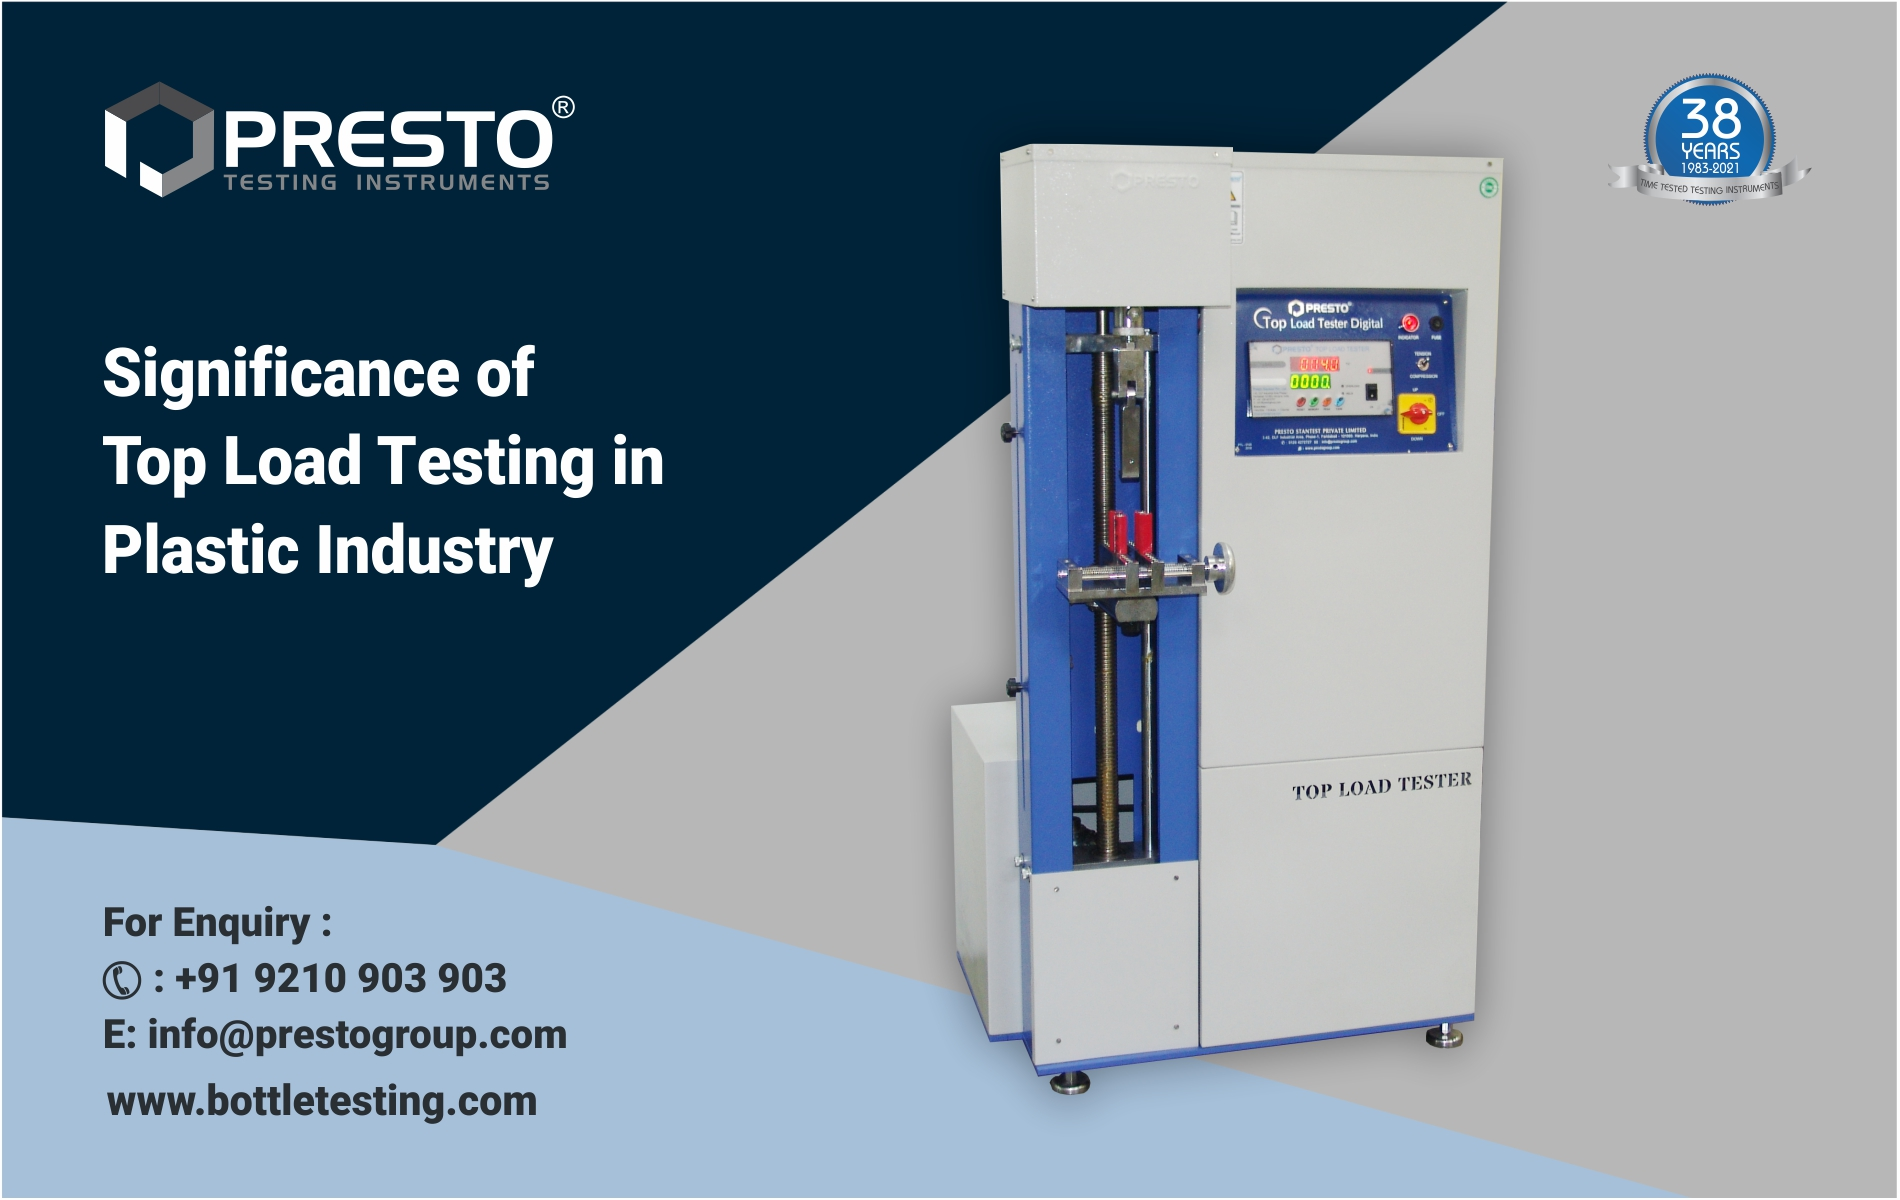 Significance of Top Load Testing in Plastic Industry